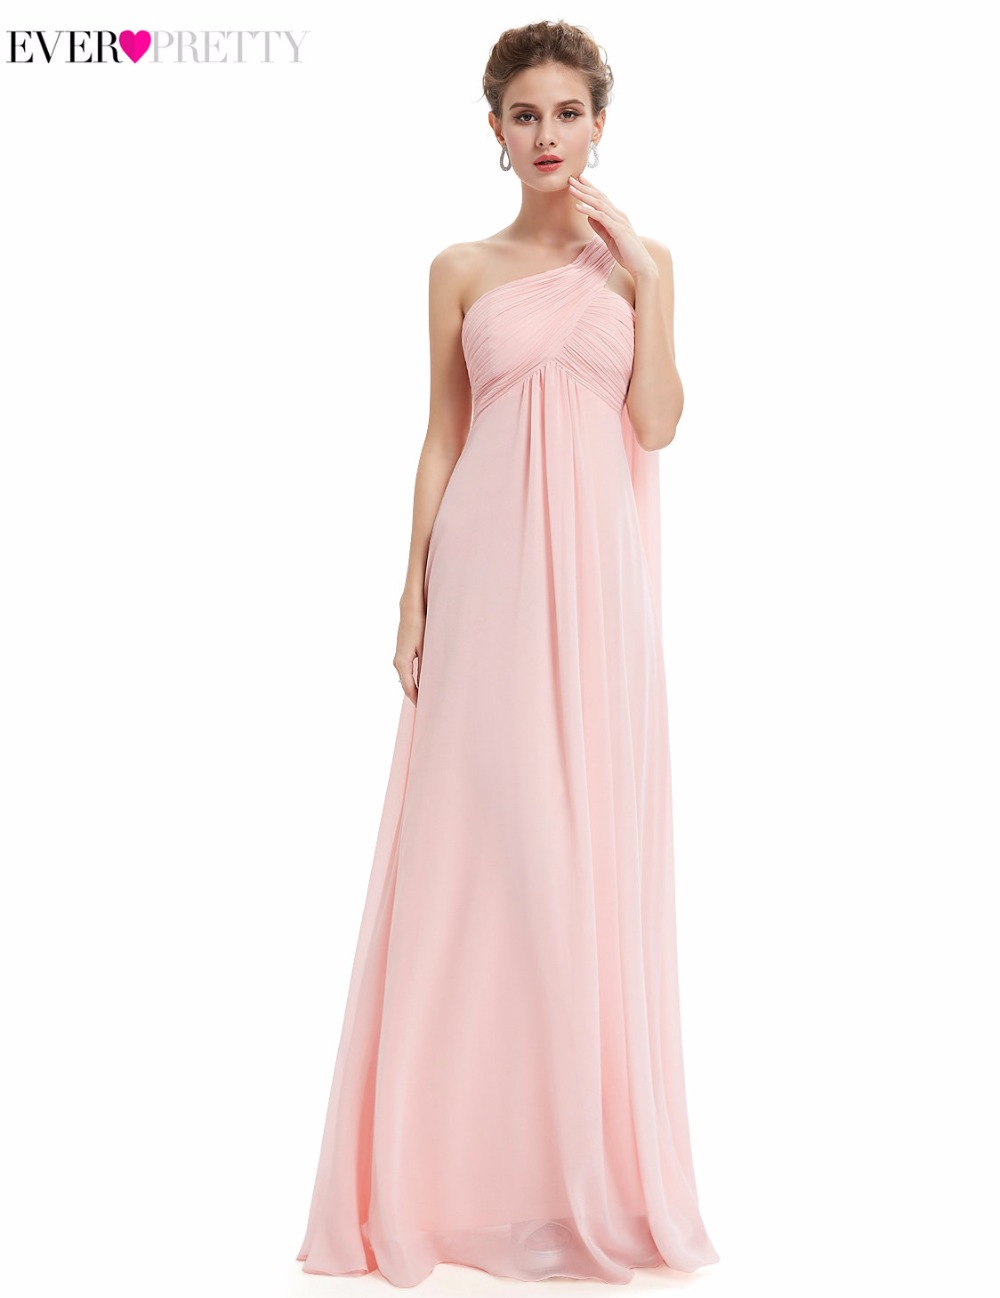 Clearance sale long bridesmaid dresses ever pretty for Wedding guest dresses sale